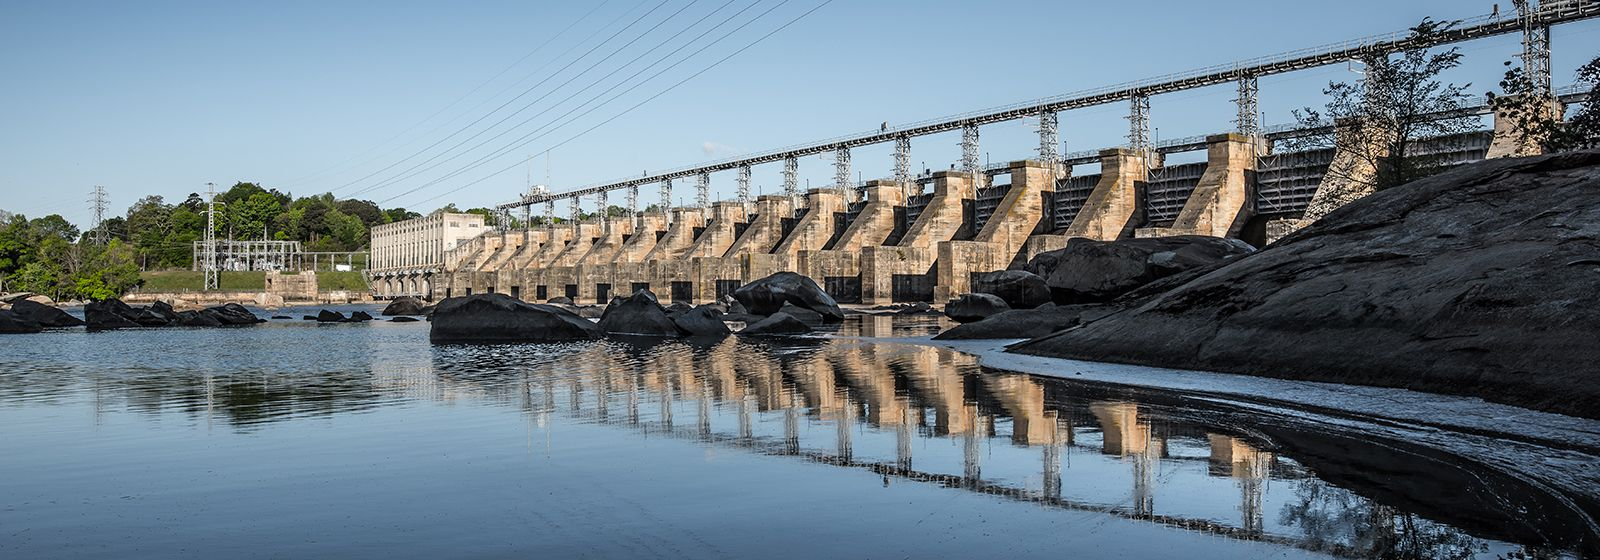 Photos: Hydropower standing strong after 100 years